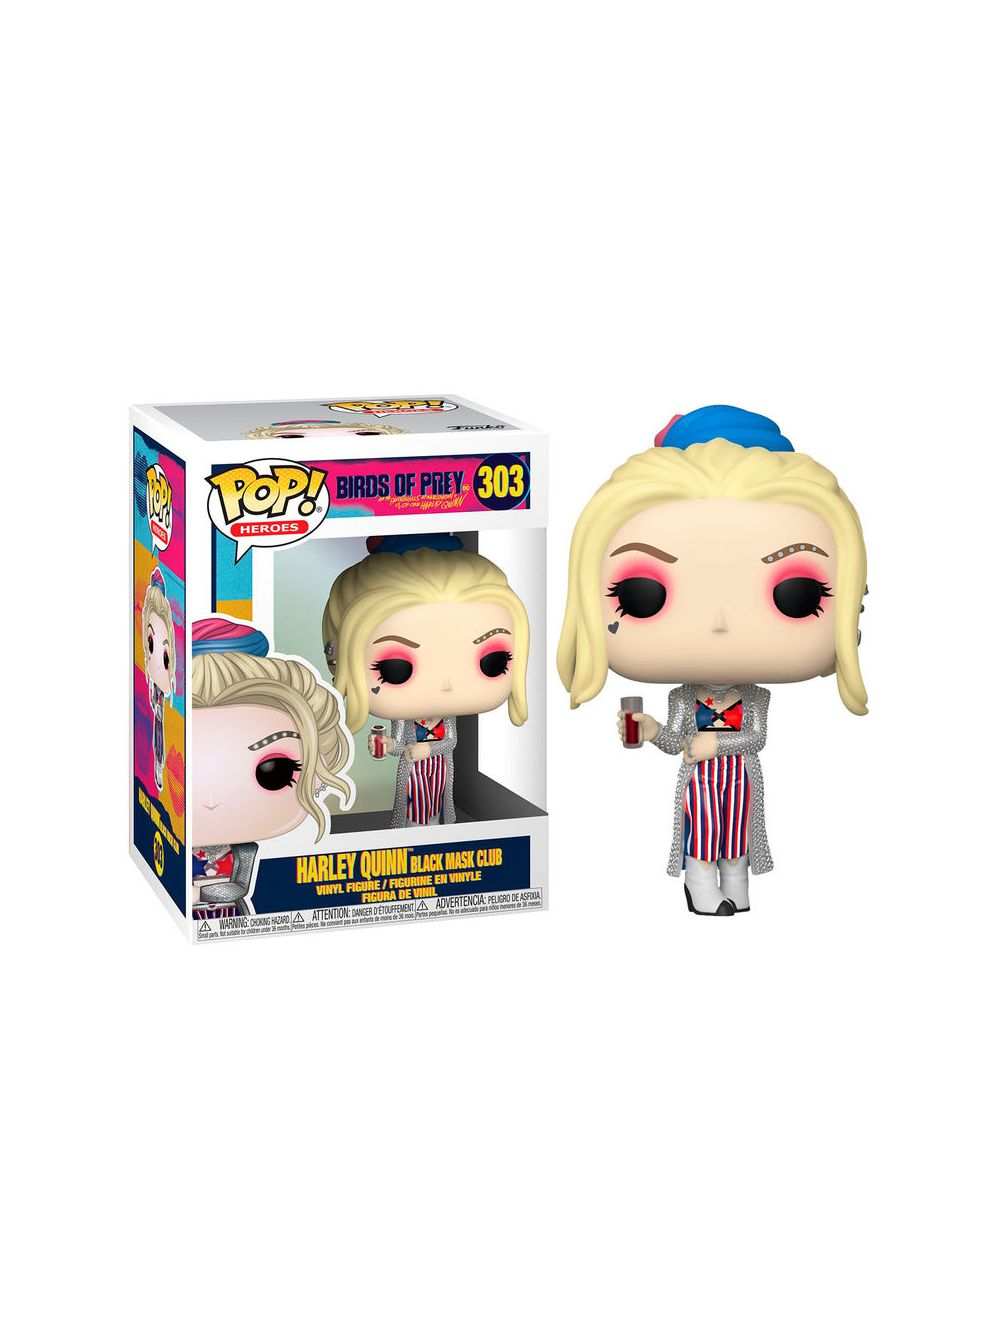 Funko POP! Birds of Prey - Harley Quinn (Black Mask Club) Vinyl Figura 10cm